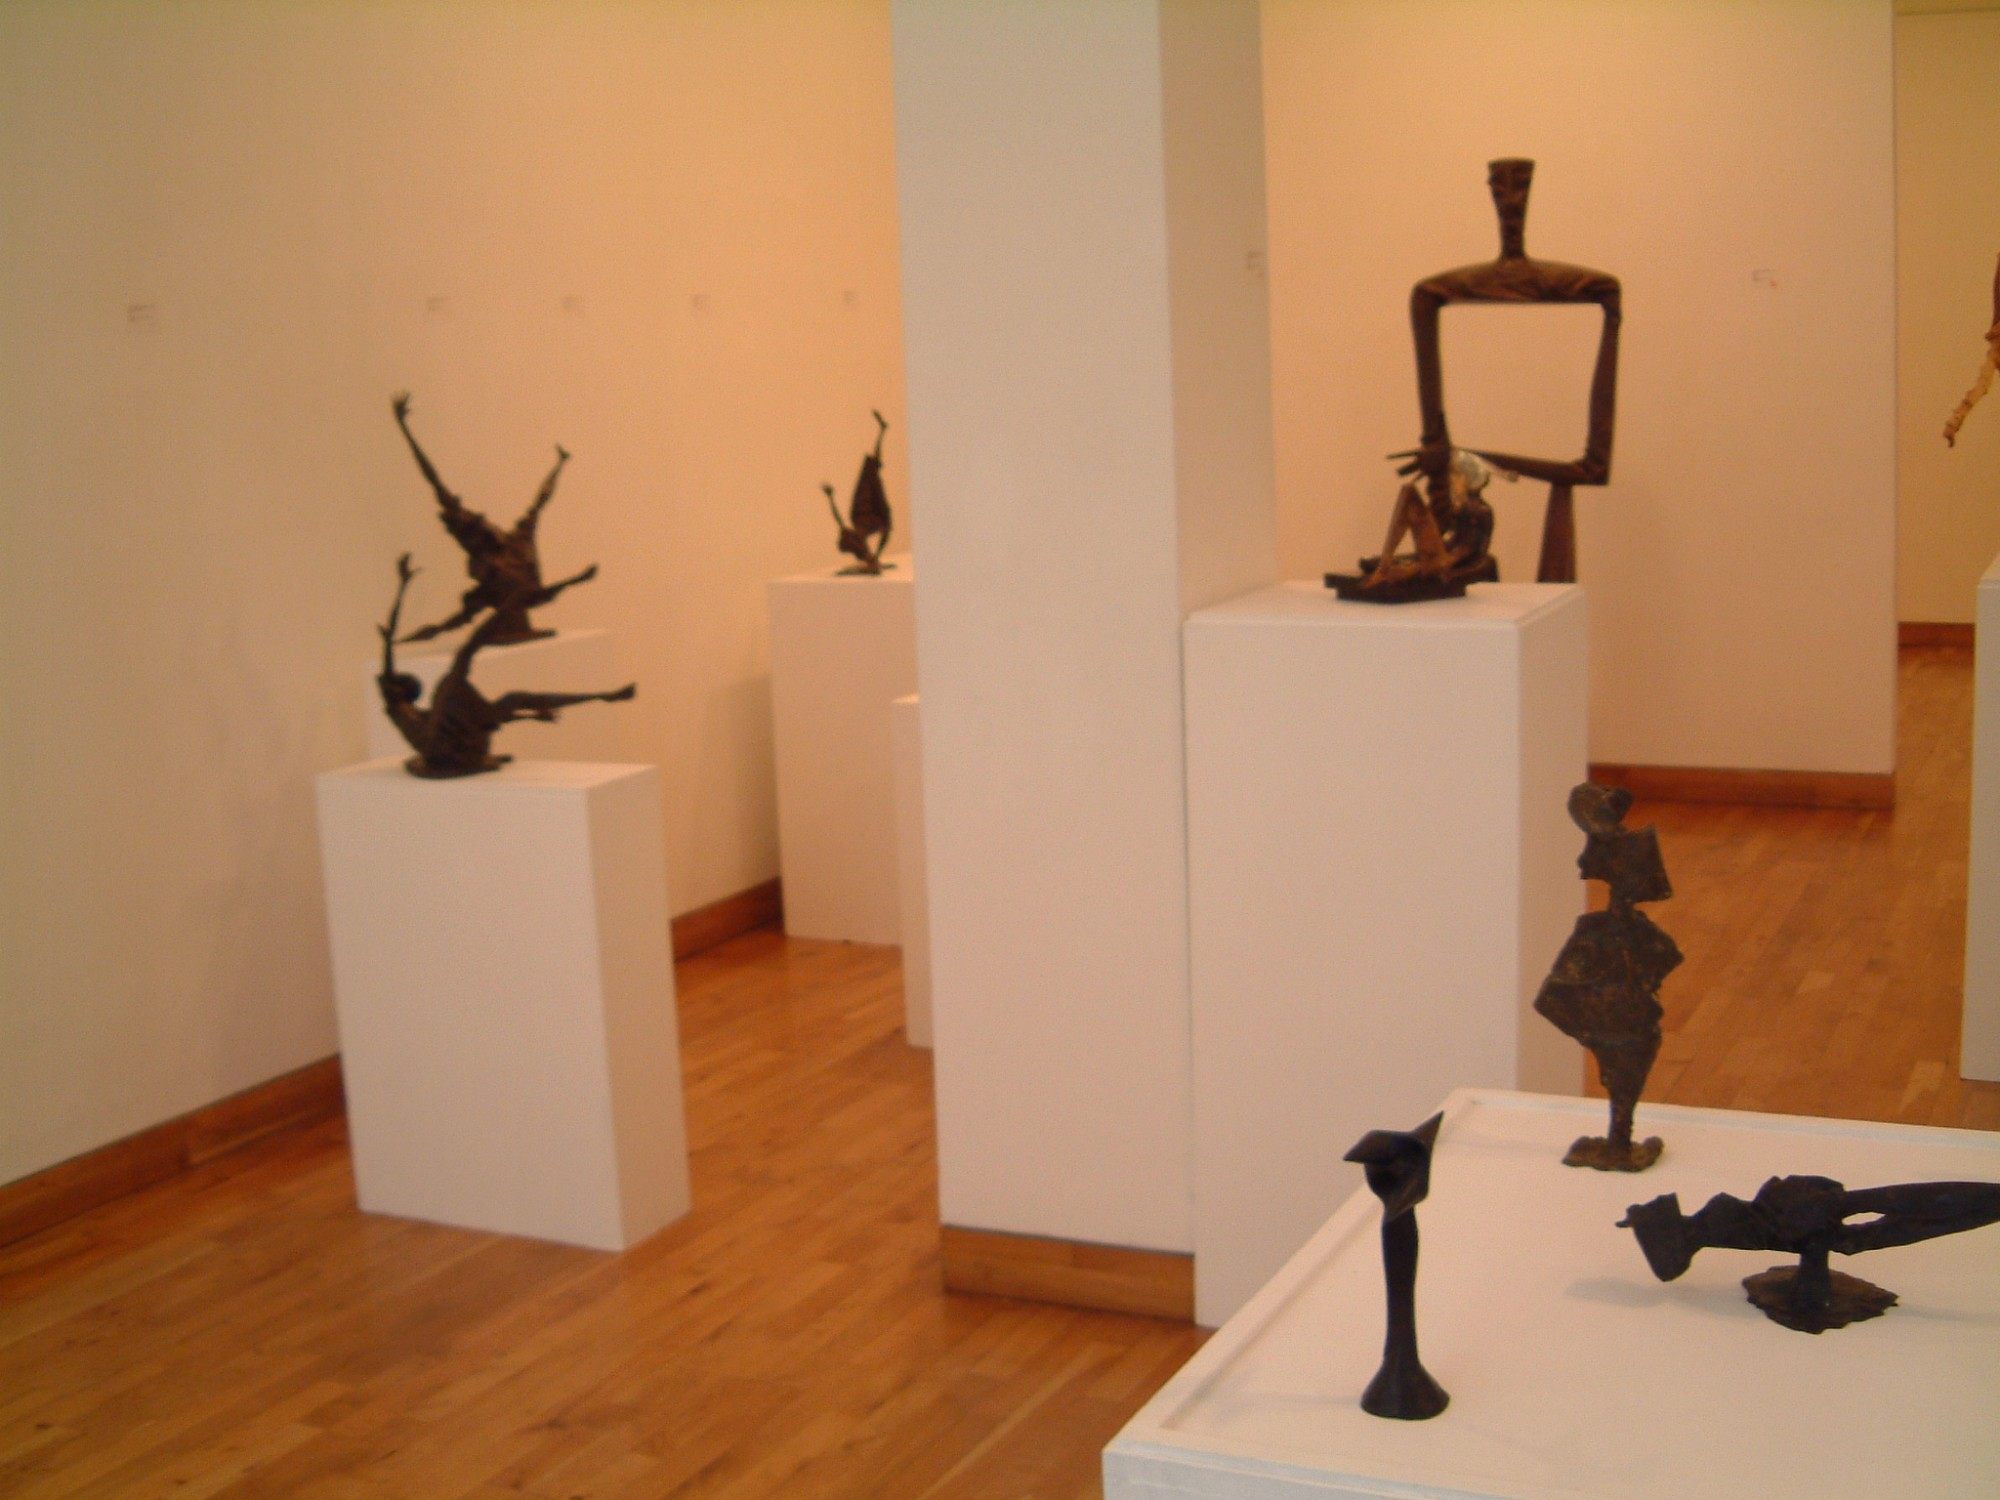 "<span class=""link fancybox-details-link""><a href=""/exhibitions/113/works/image_standalone468/"">View Detail Page</a></span><p>F. E. MCWILLIAM 